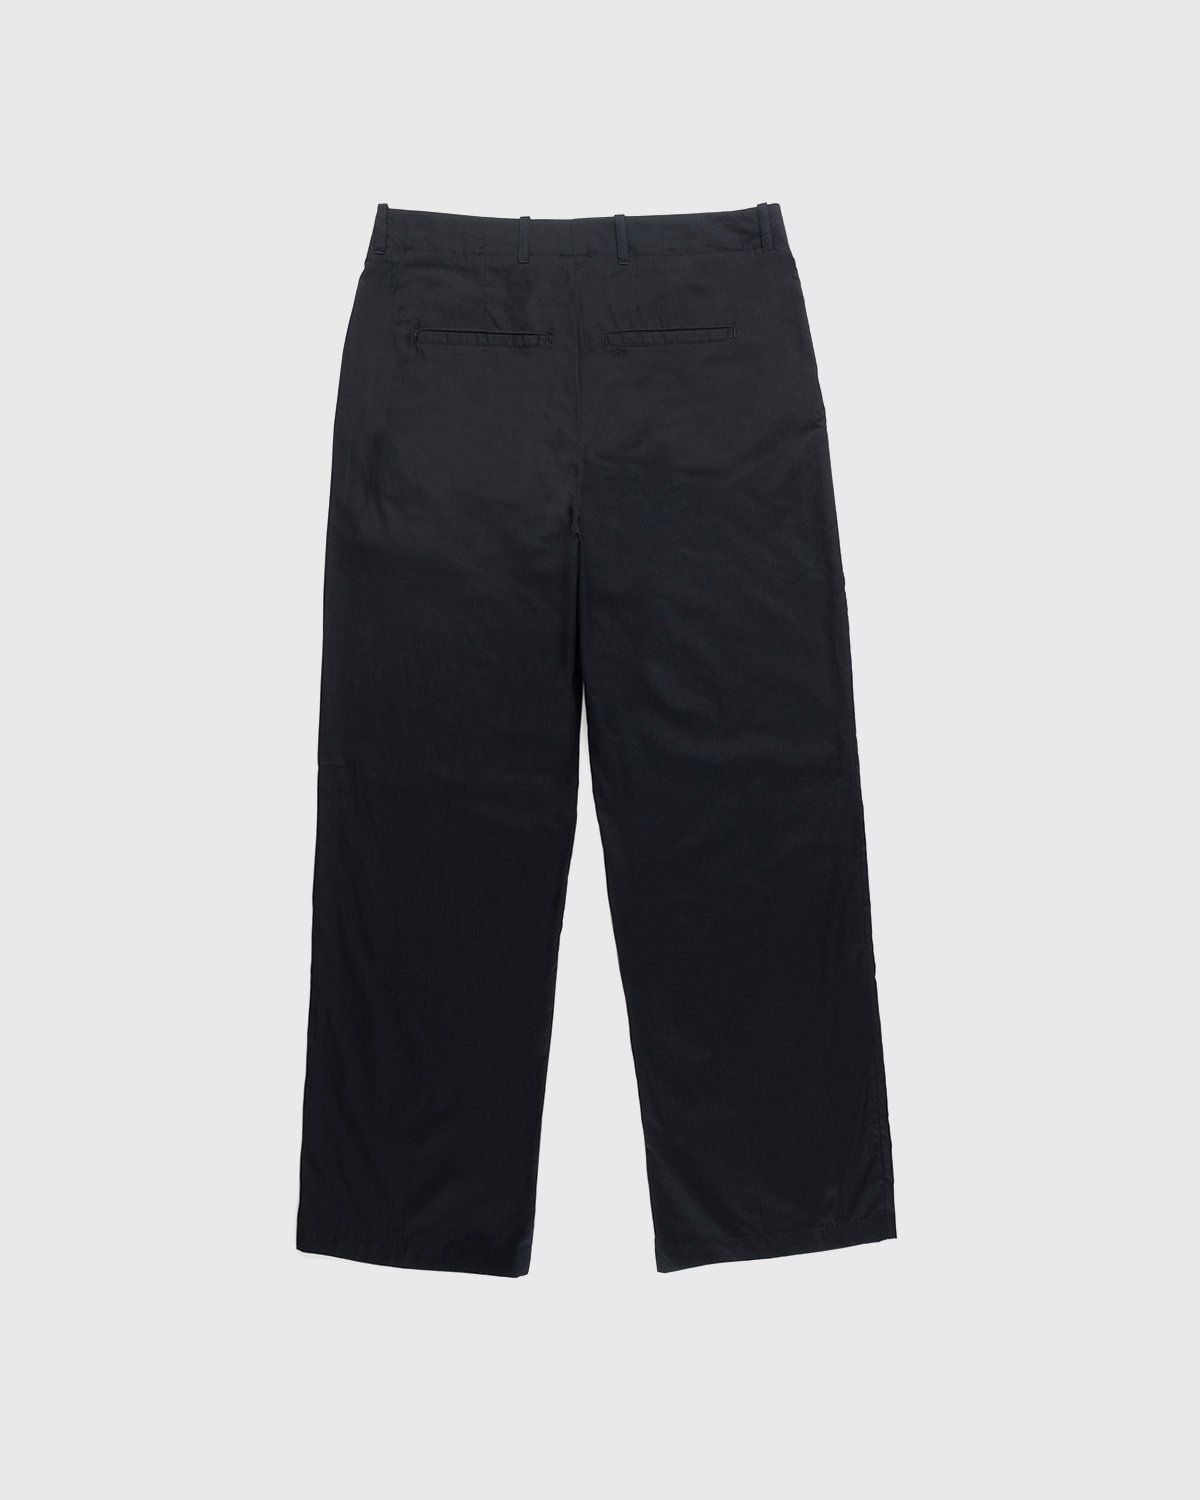 Our Legacy – Borrowed Chino Black Voile - Image 2